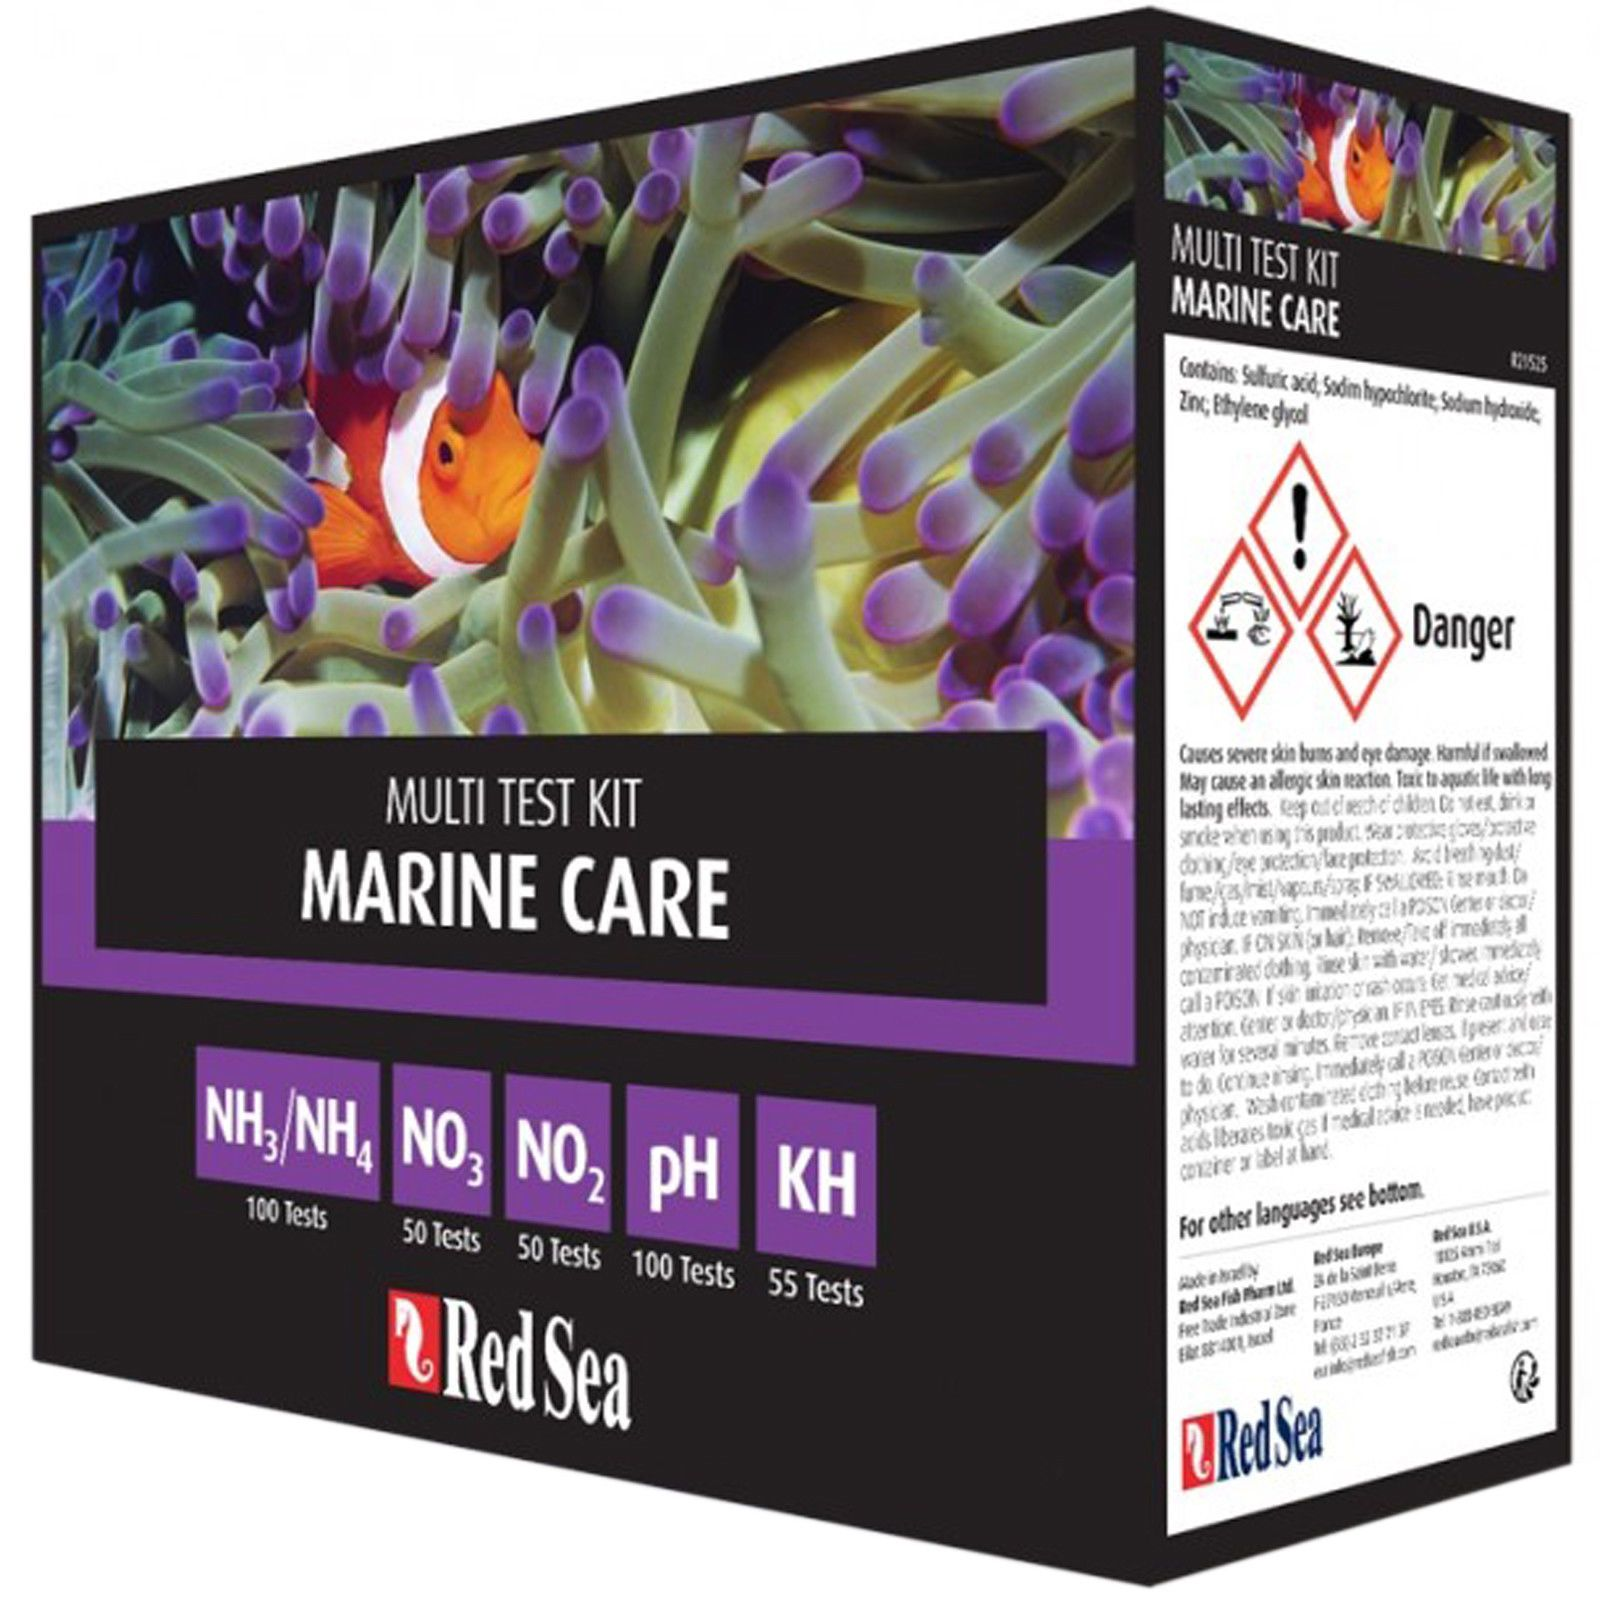 Red Sea Marine Care Test Kit - Multi